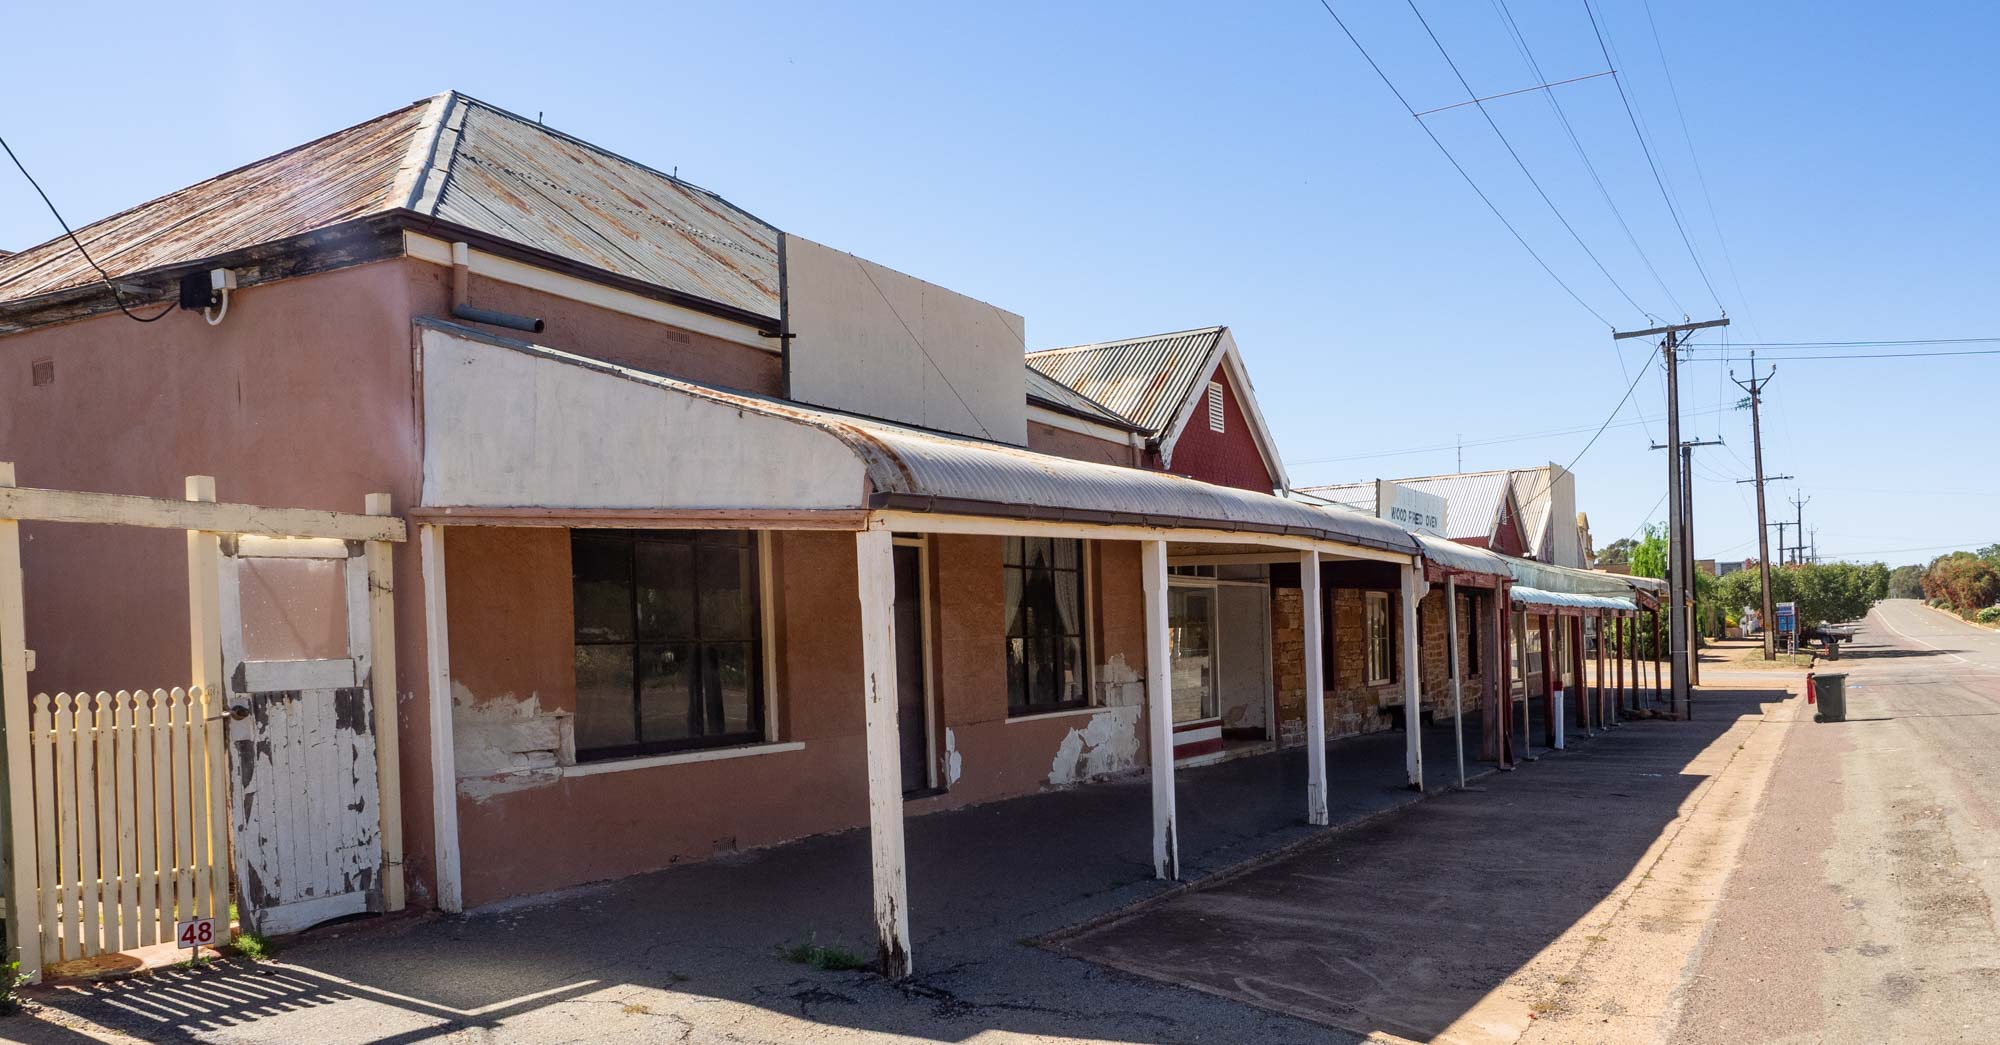 More of Wirrabarra. God, I love the stobie pole! - a South Australian icon.